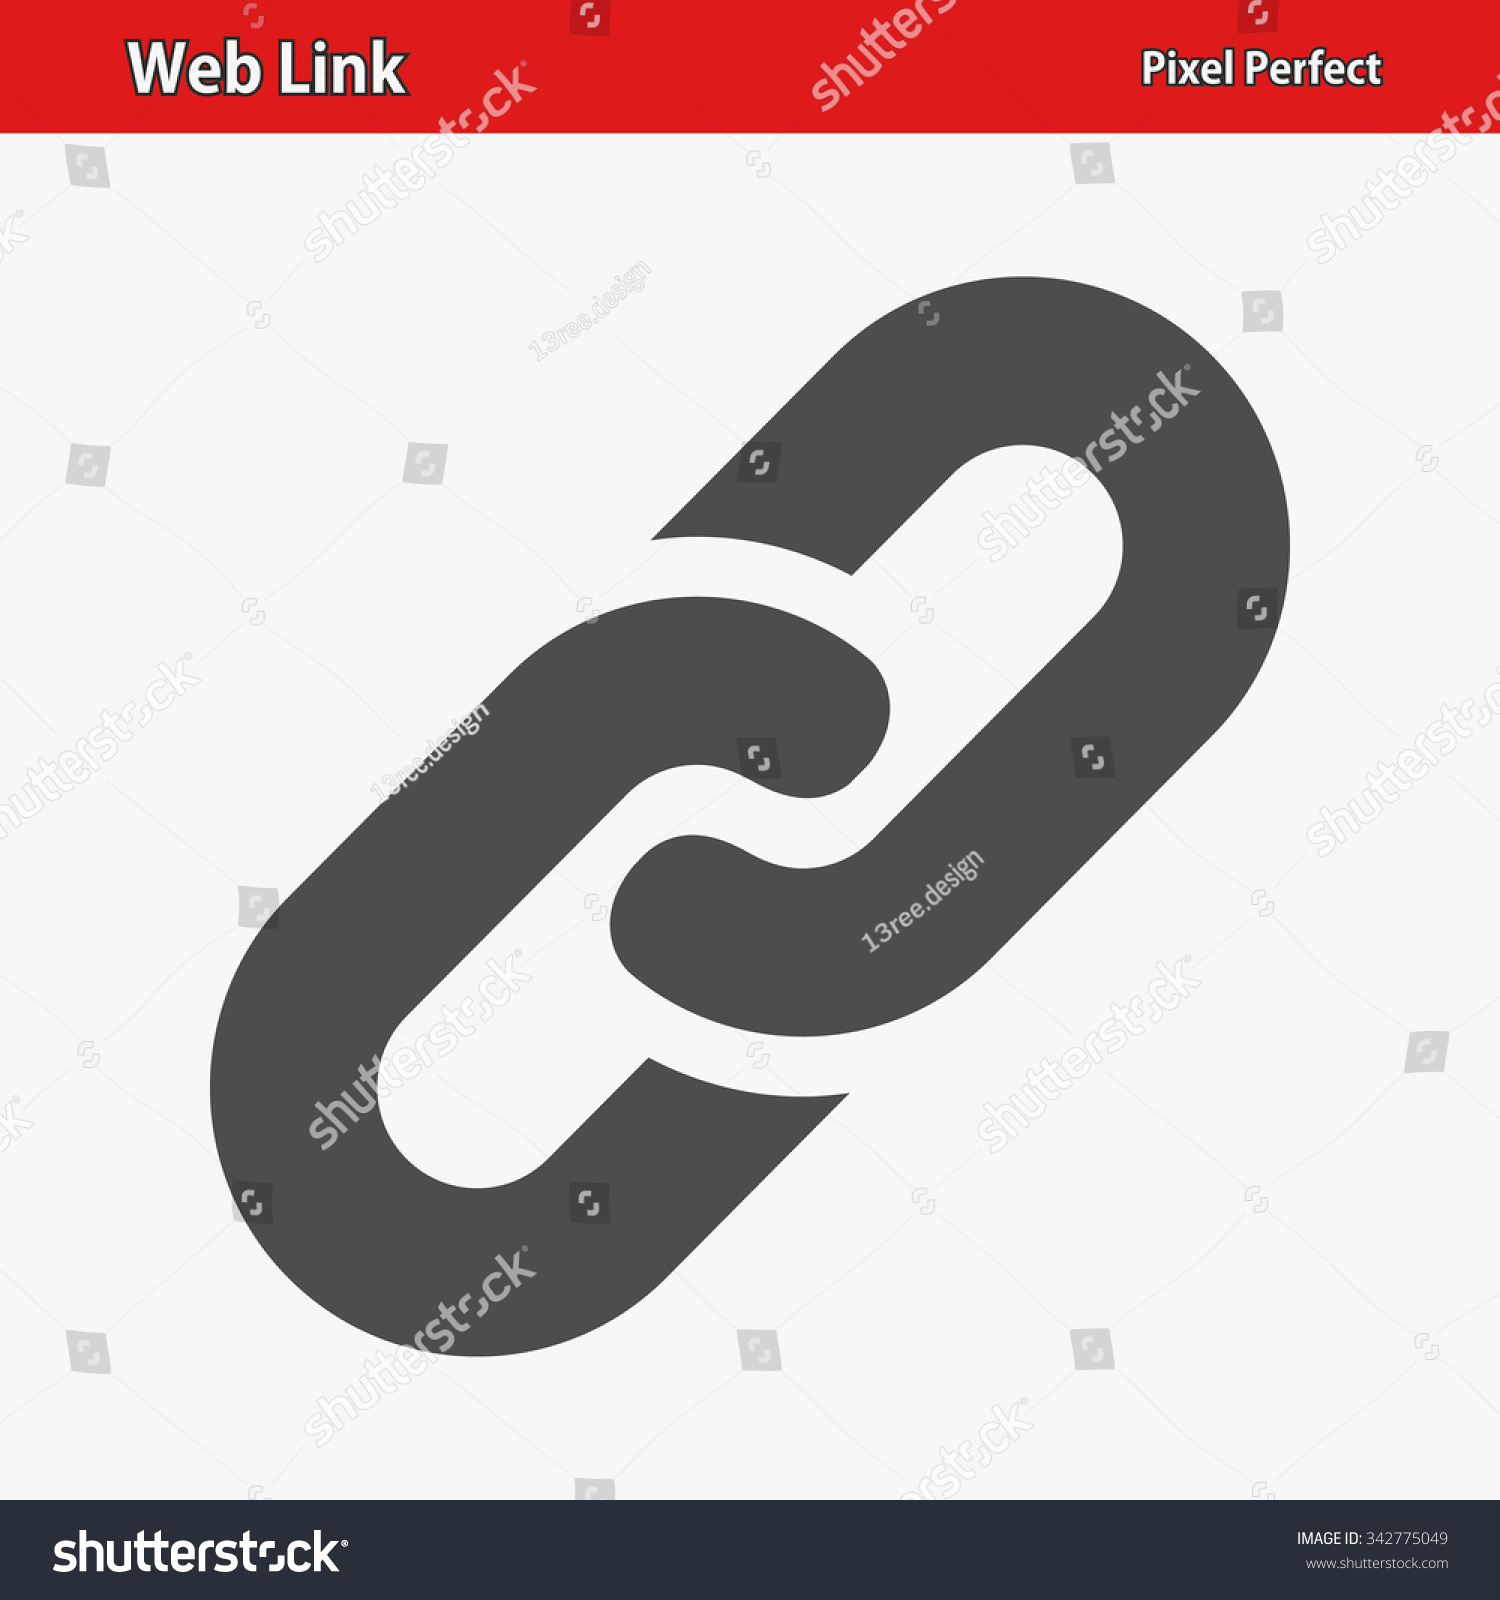 Web Link Icon Professional Pixel Perfect Stock Vector Royalty Free